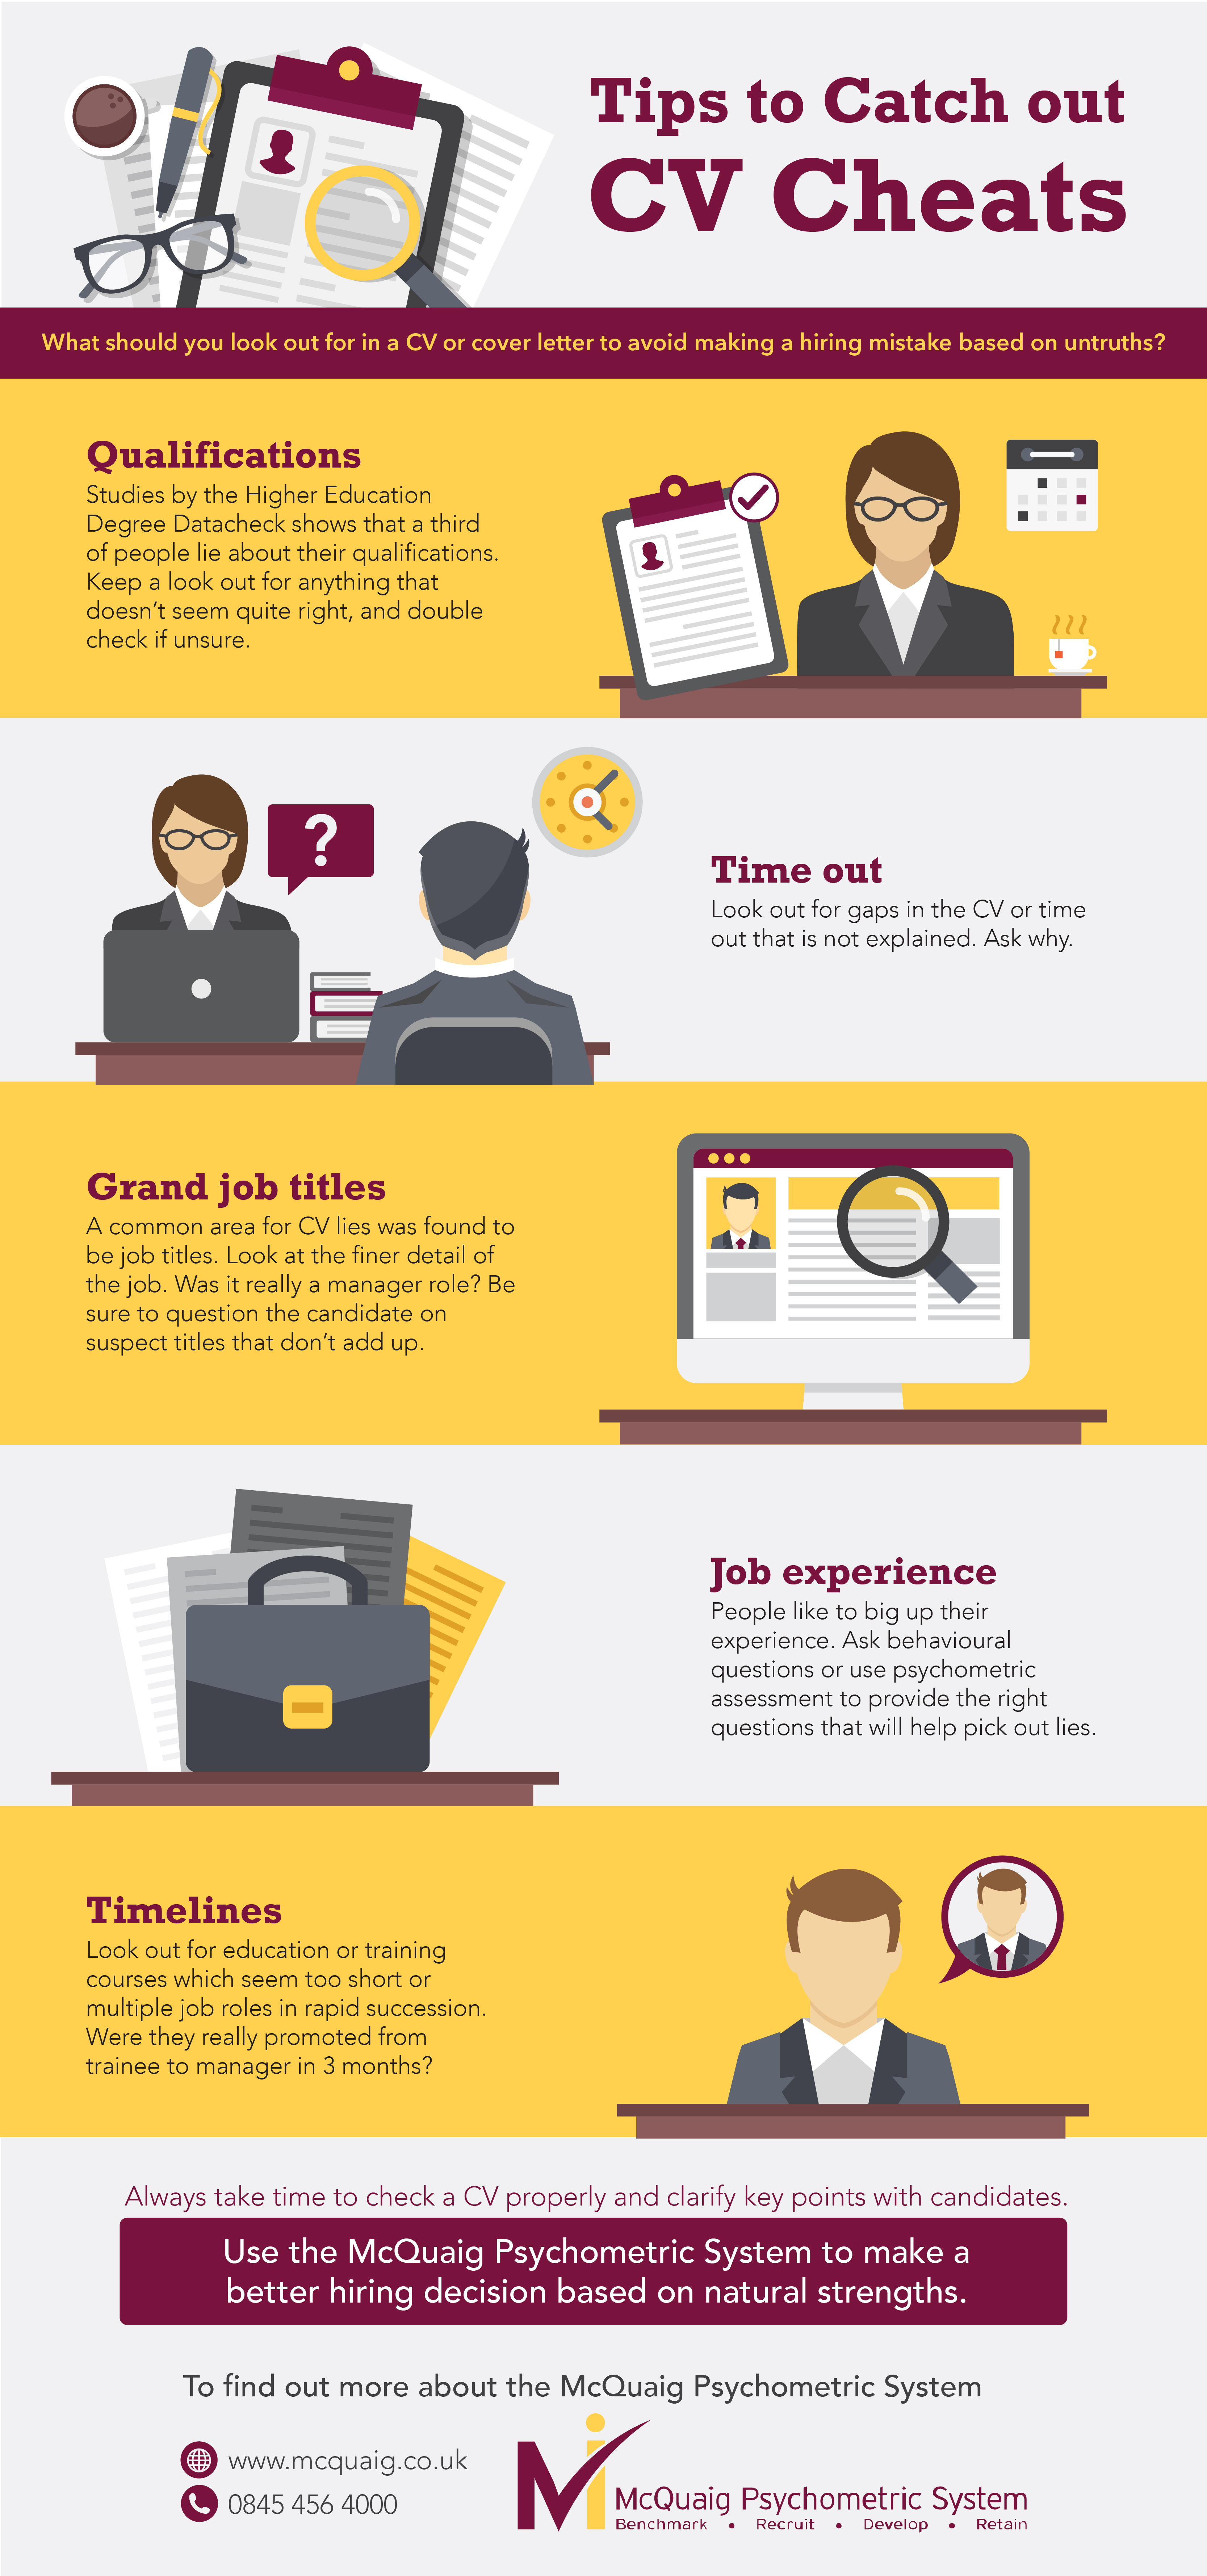 Tips to Catch Out CV Cheats